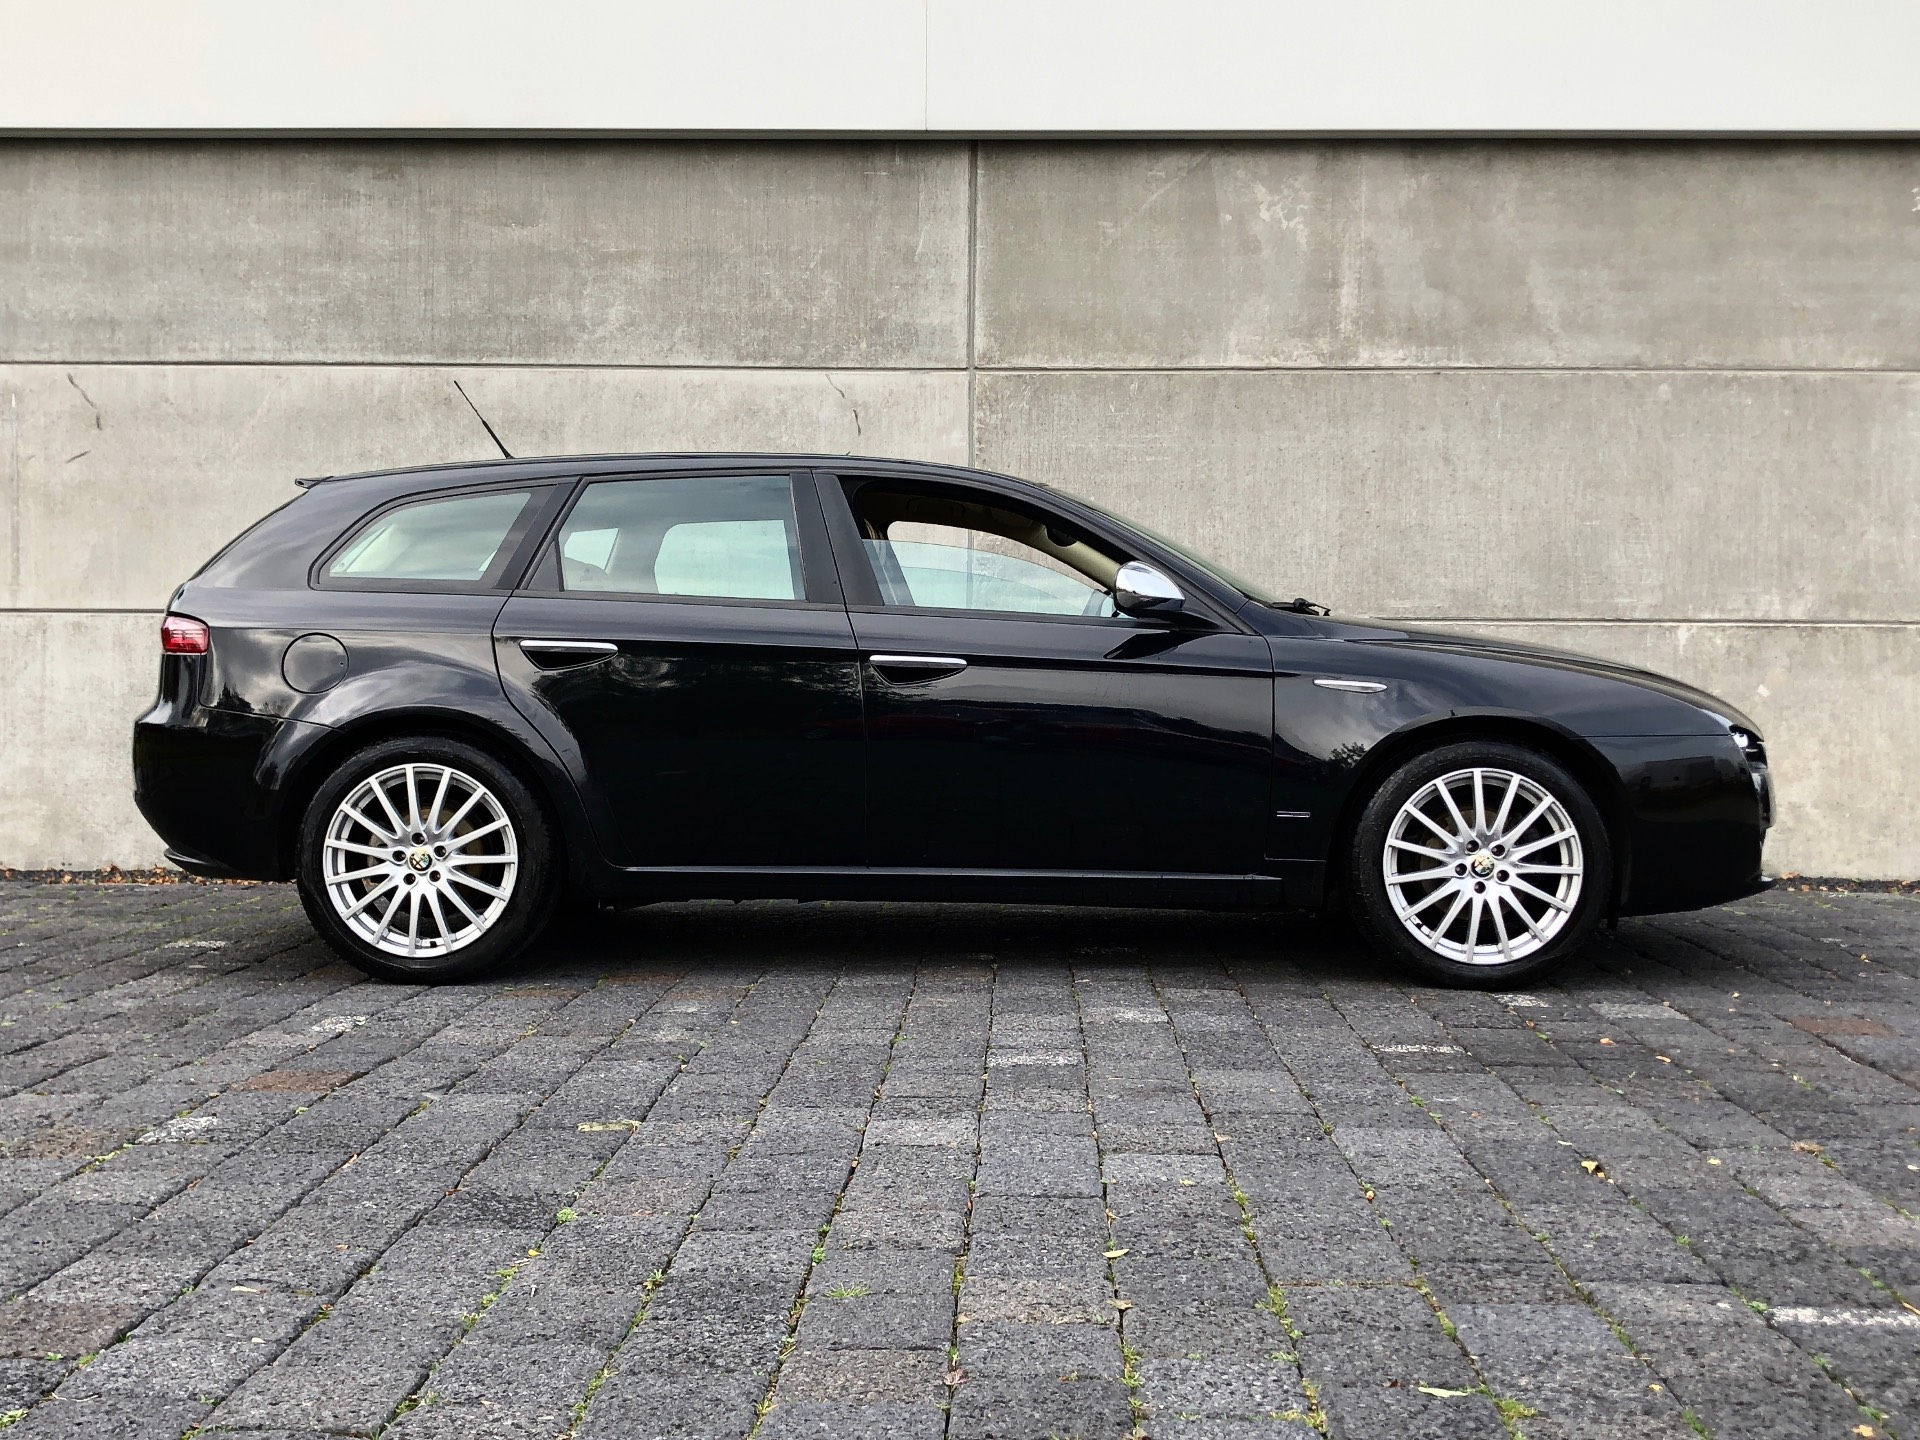 ALFA 159 SPORTWAGON 1.9 JTS DISTINCTIVE